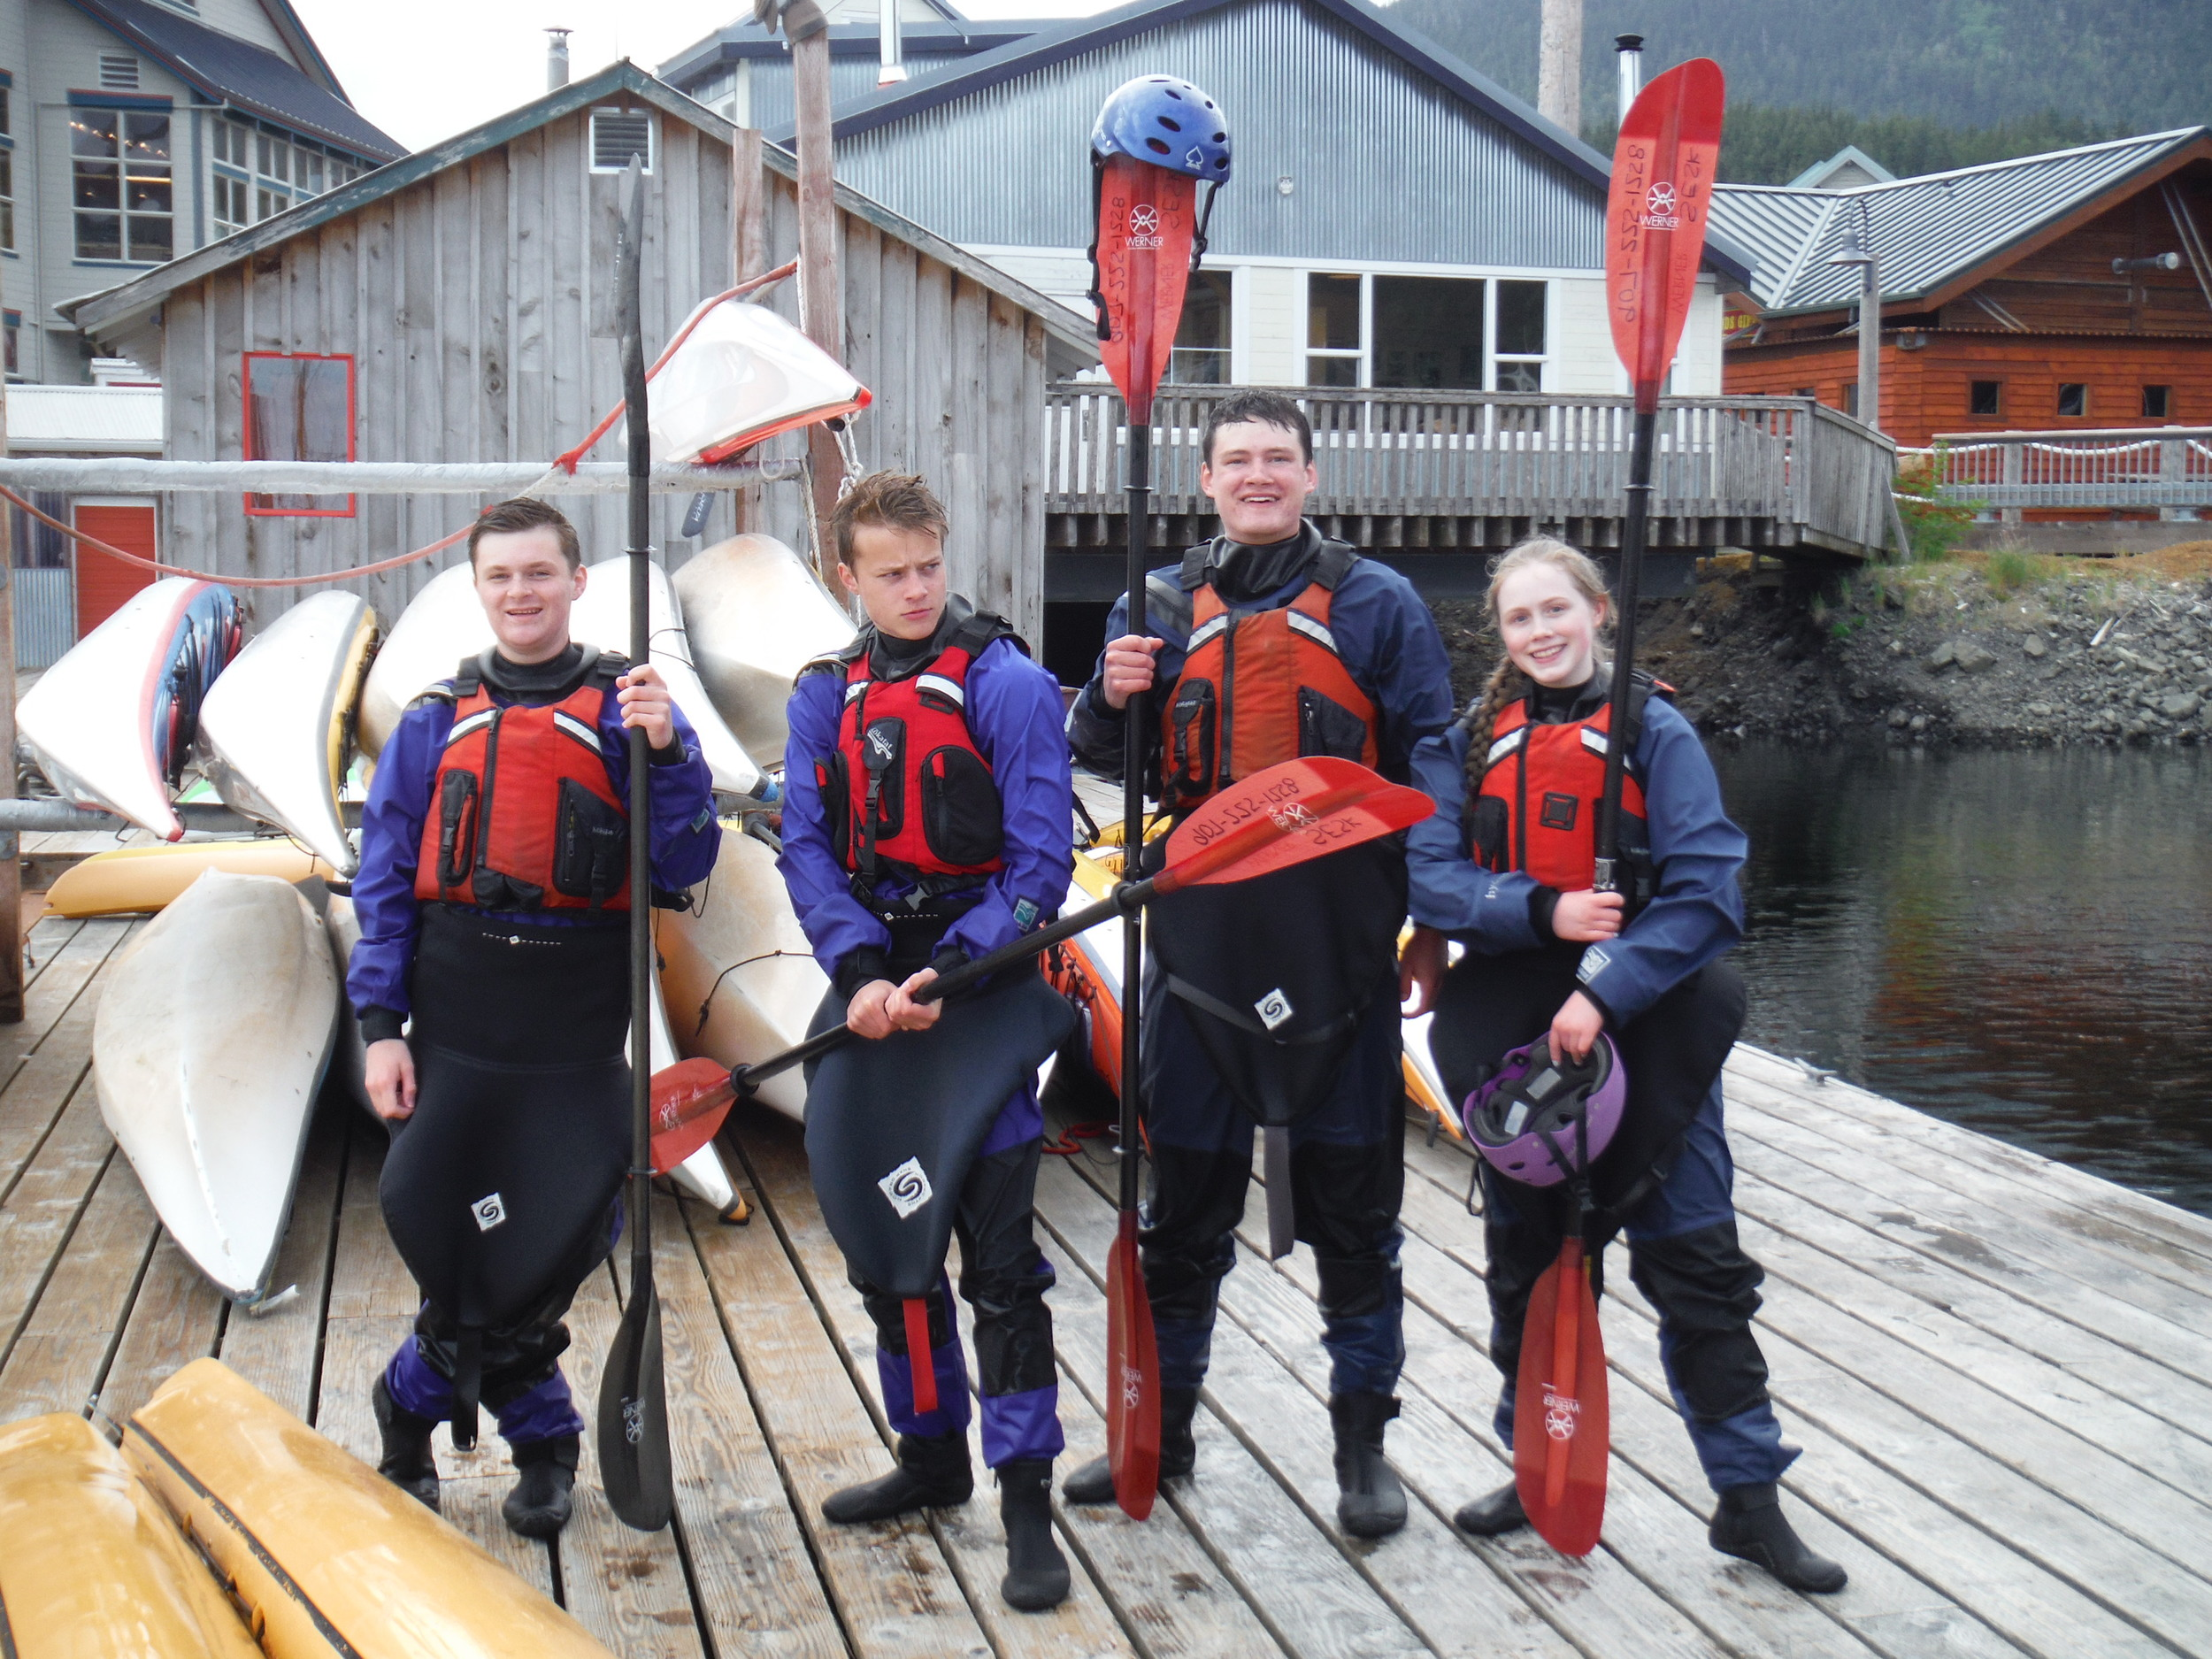 From left: Kenny, Rudy, Brendan and Clara all geared up for dry-suit training